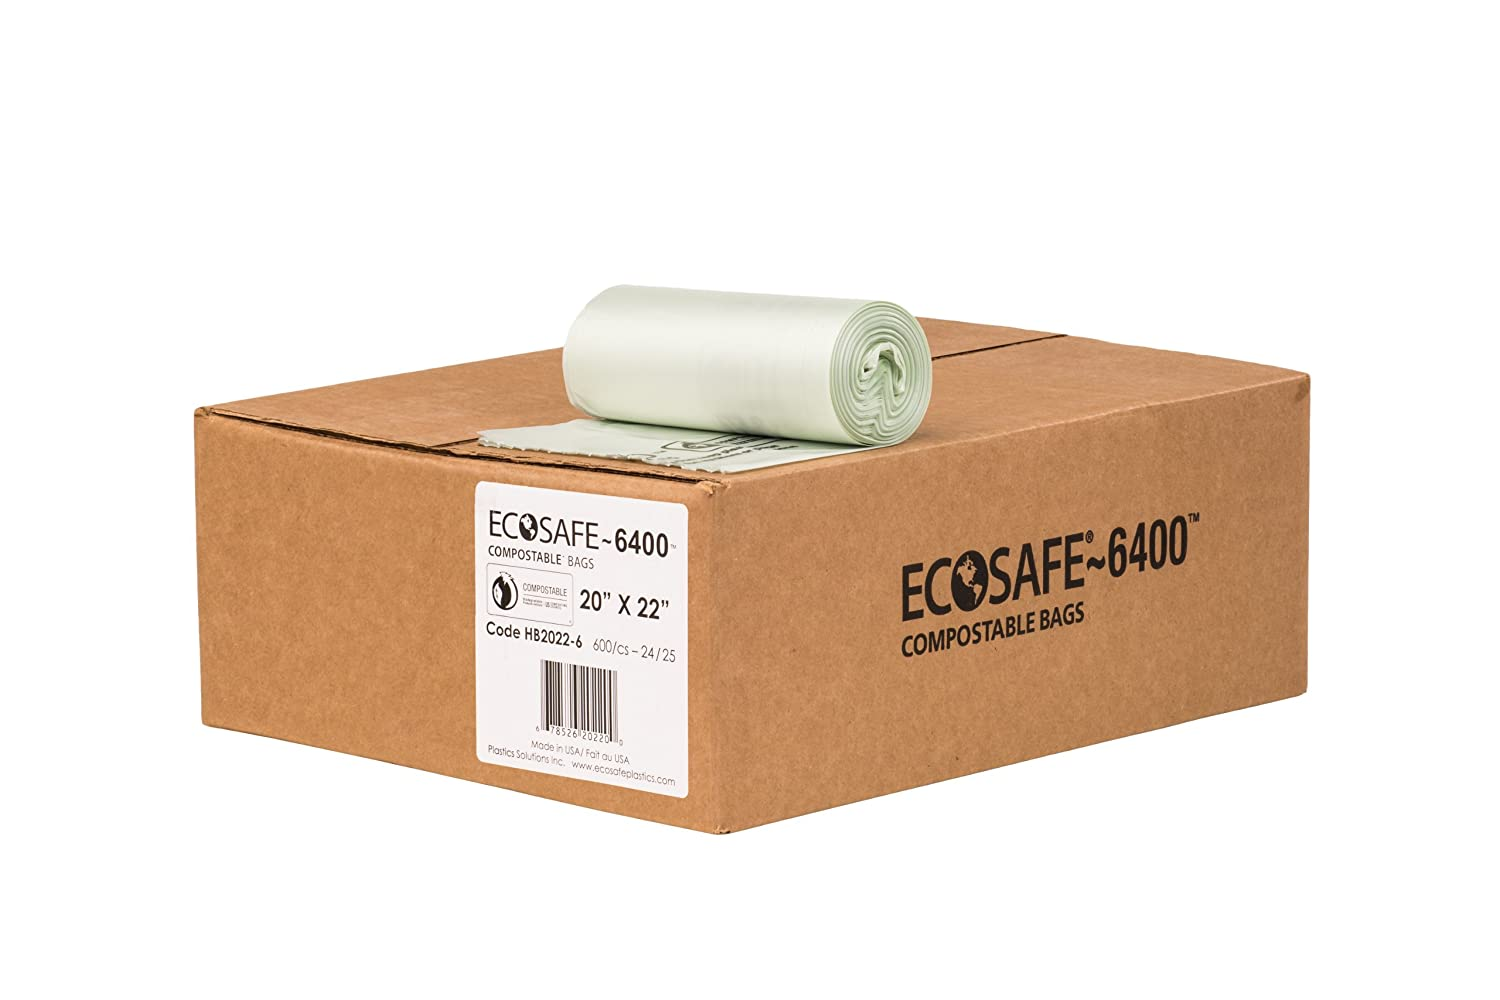 EcoSafe-6400 Department store HB2022-6 Compostable Max 70% OFF 7- Bag Certified